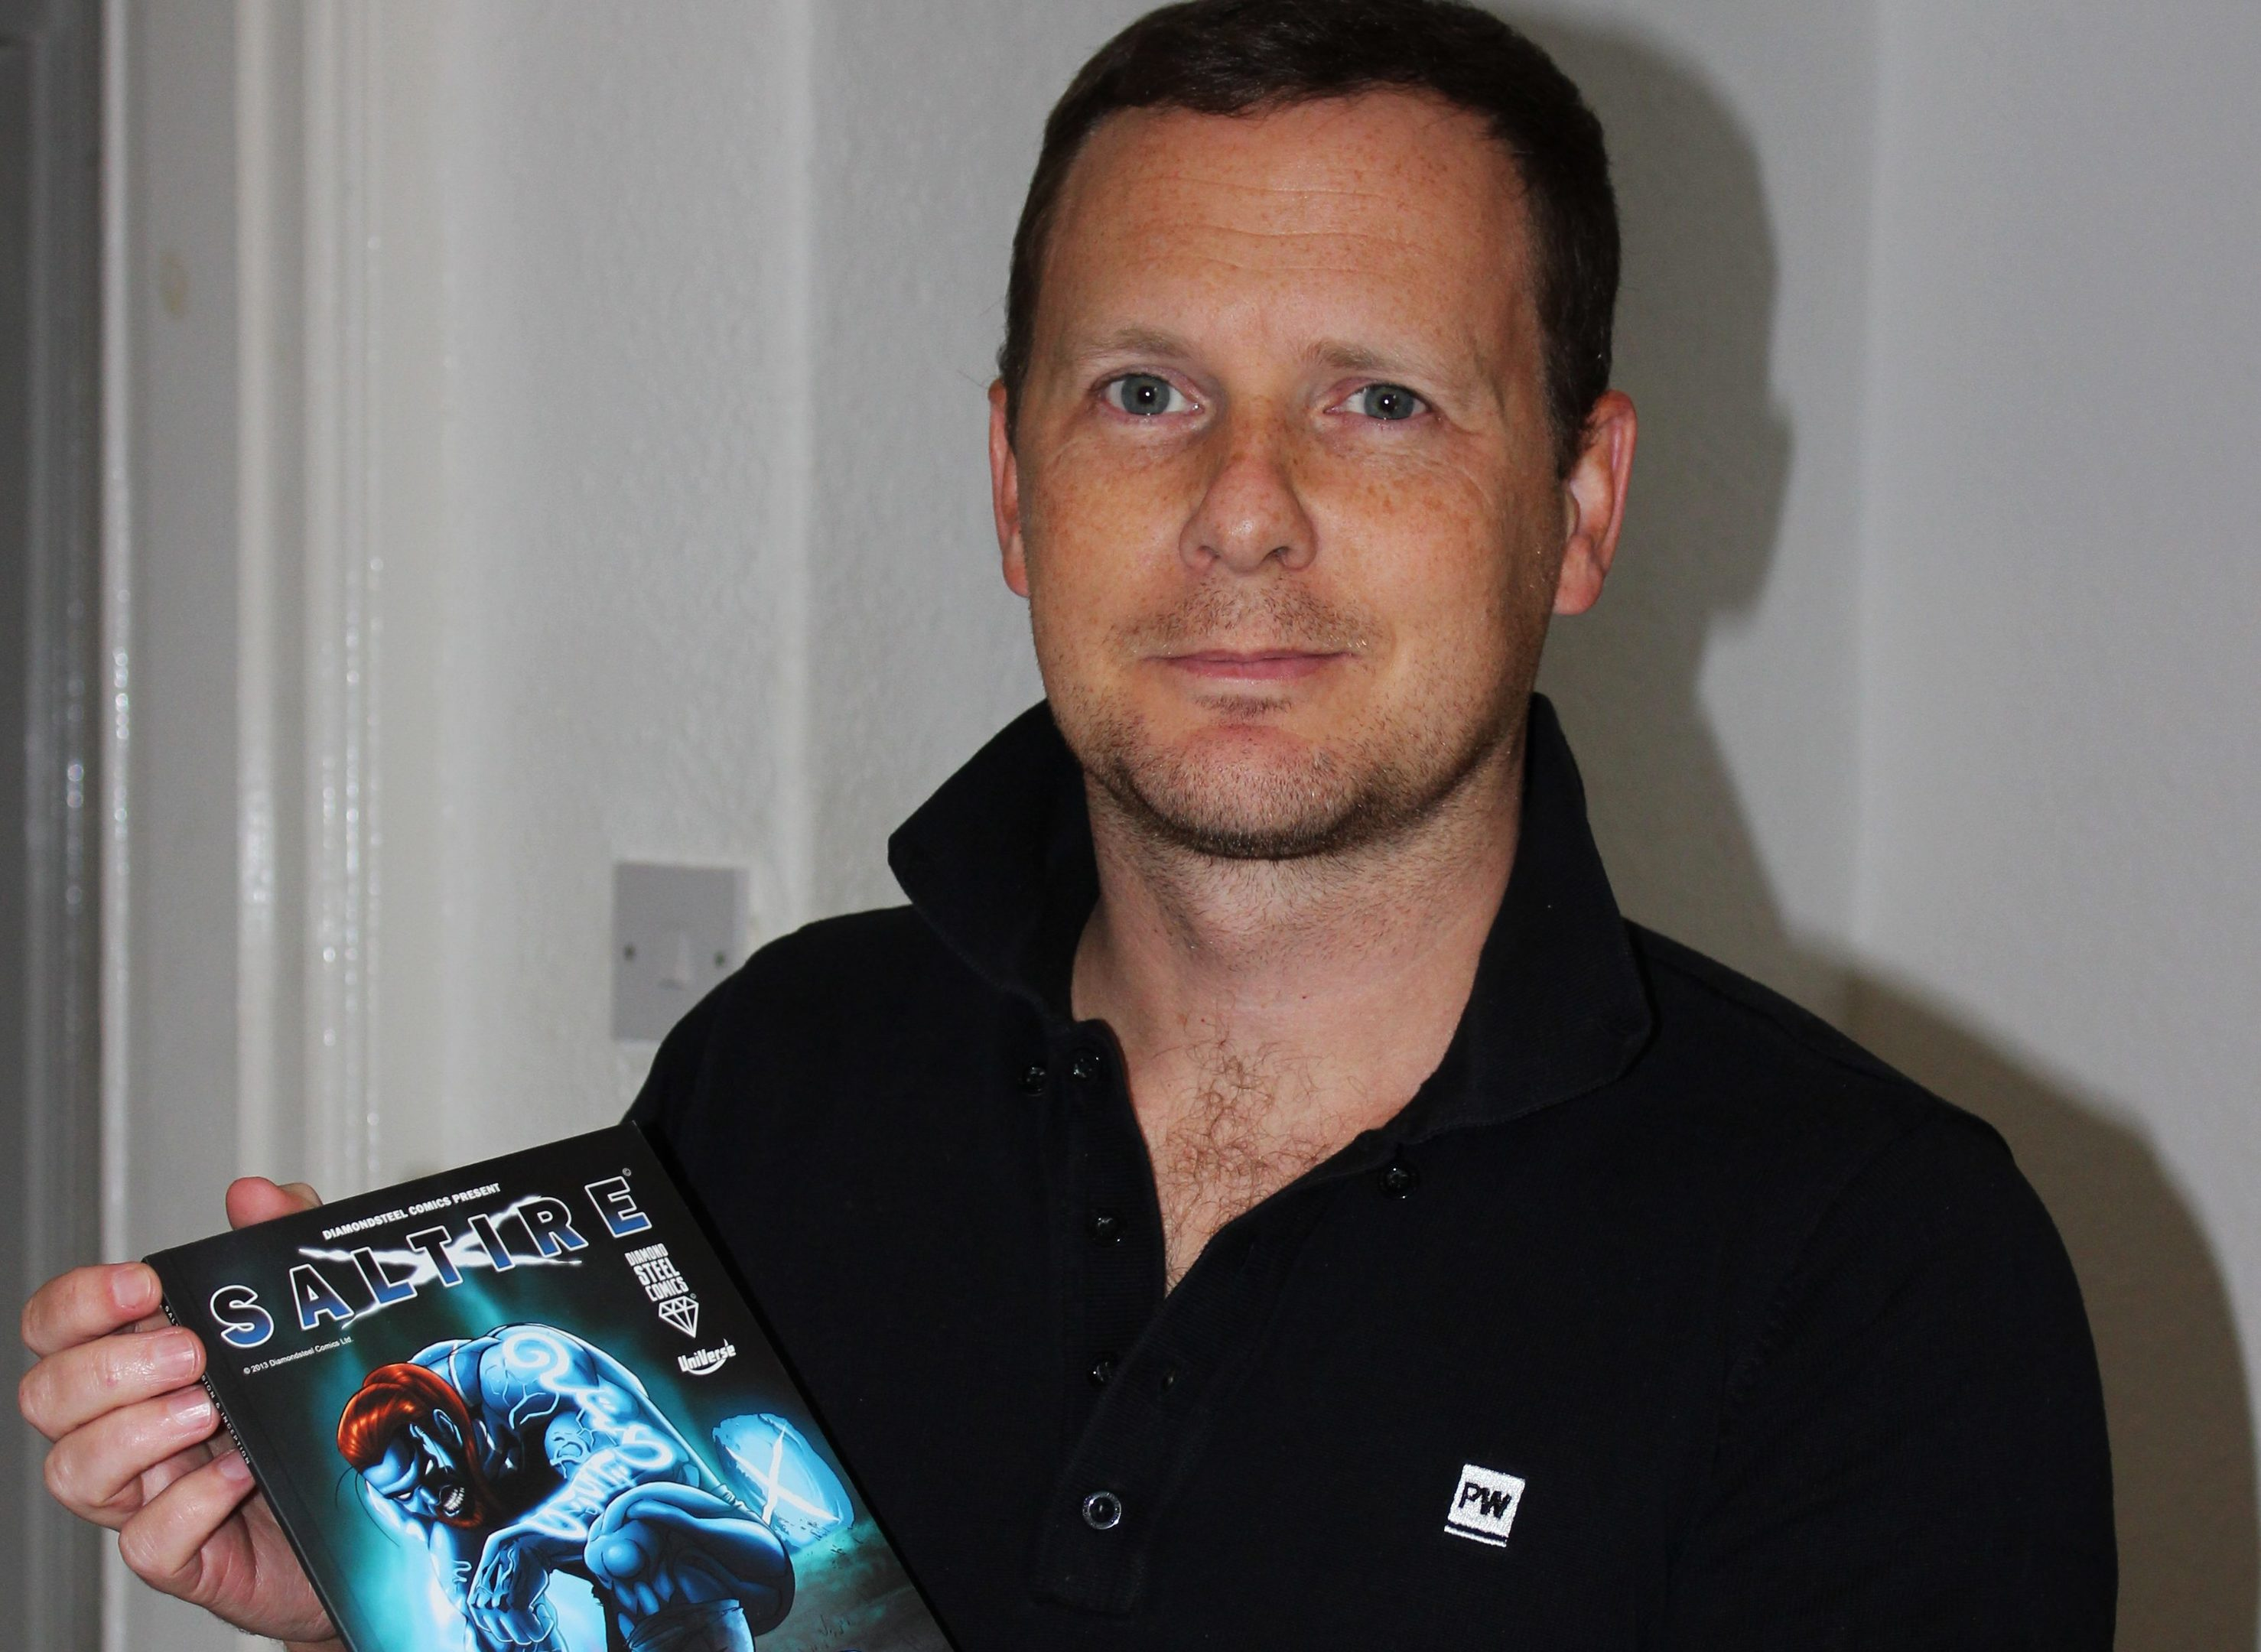 Saltire creator John Ferguson will guest at the first Glenrothes Comic Con